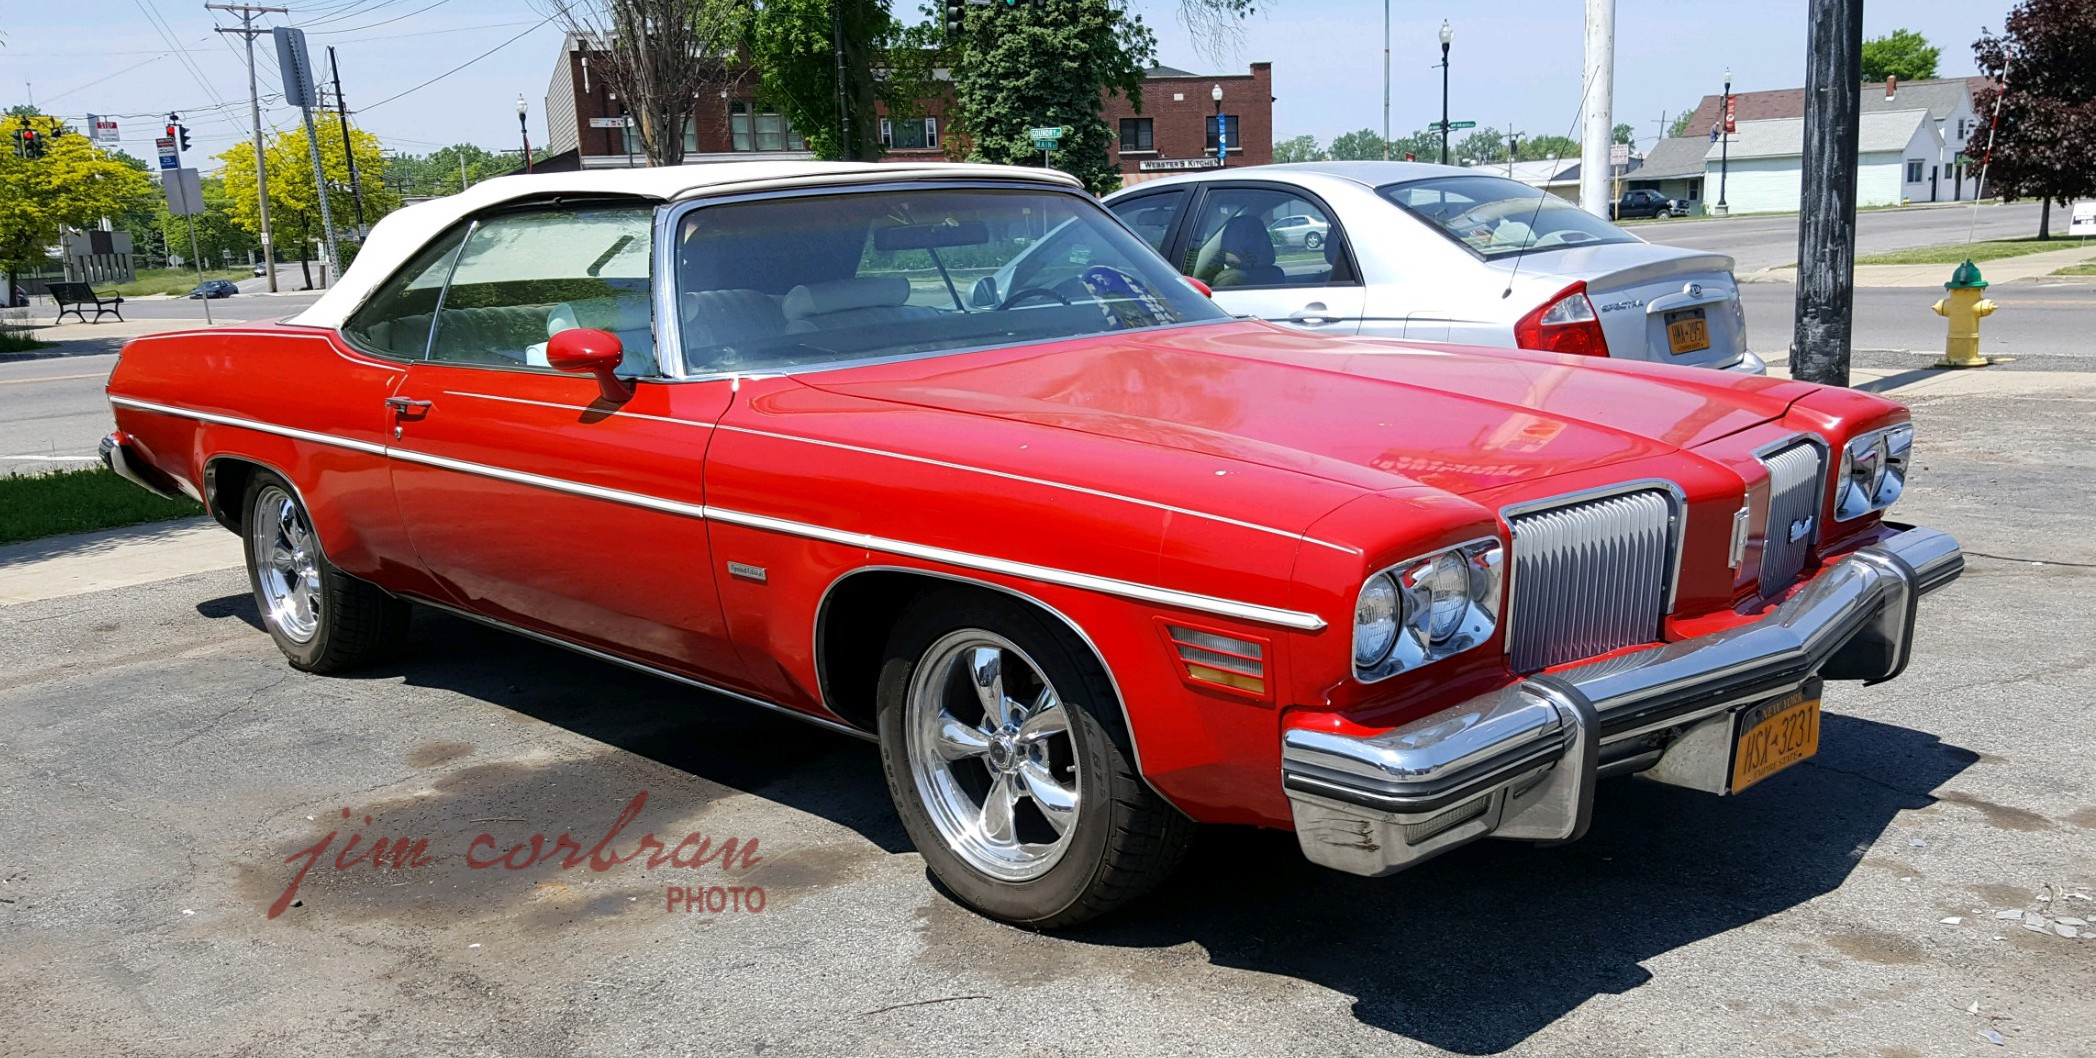 RealRides of WNY - 1974 Olds Delta 88